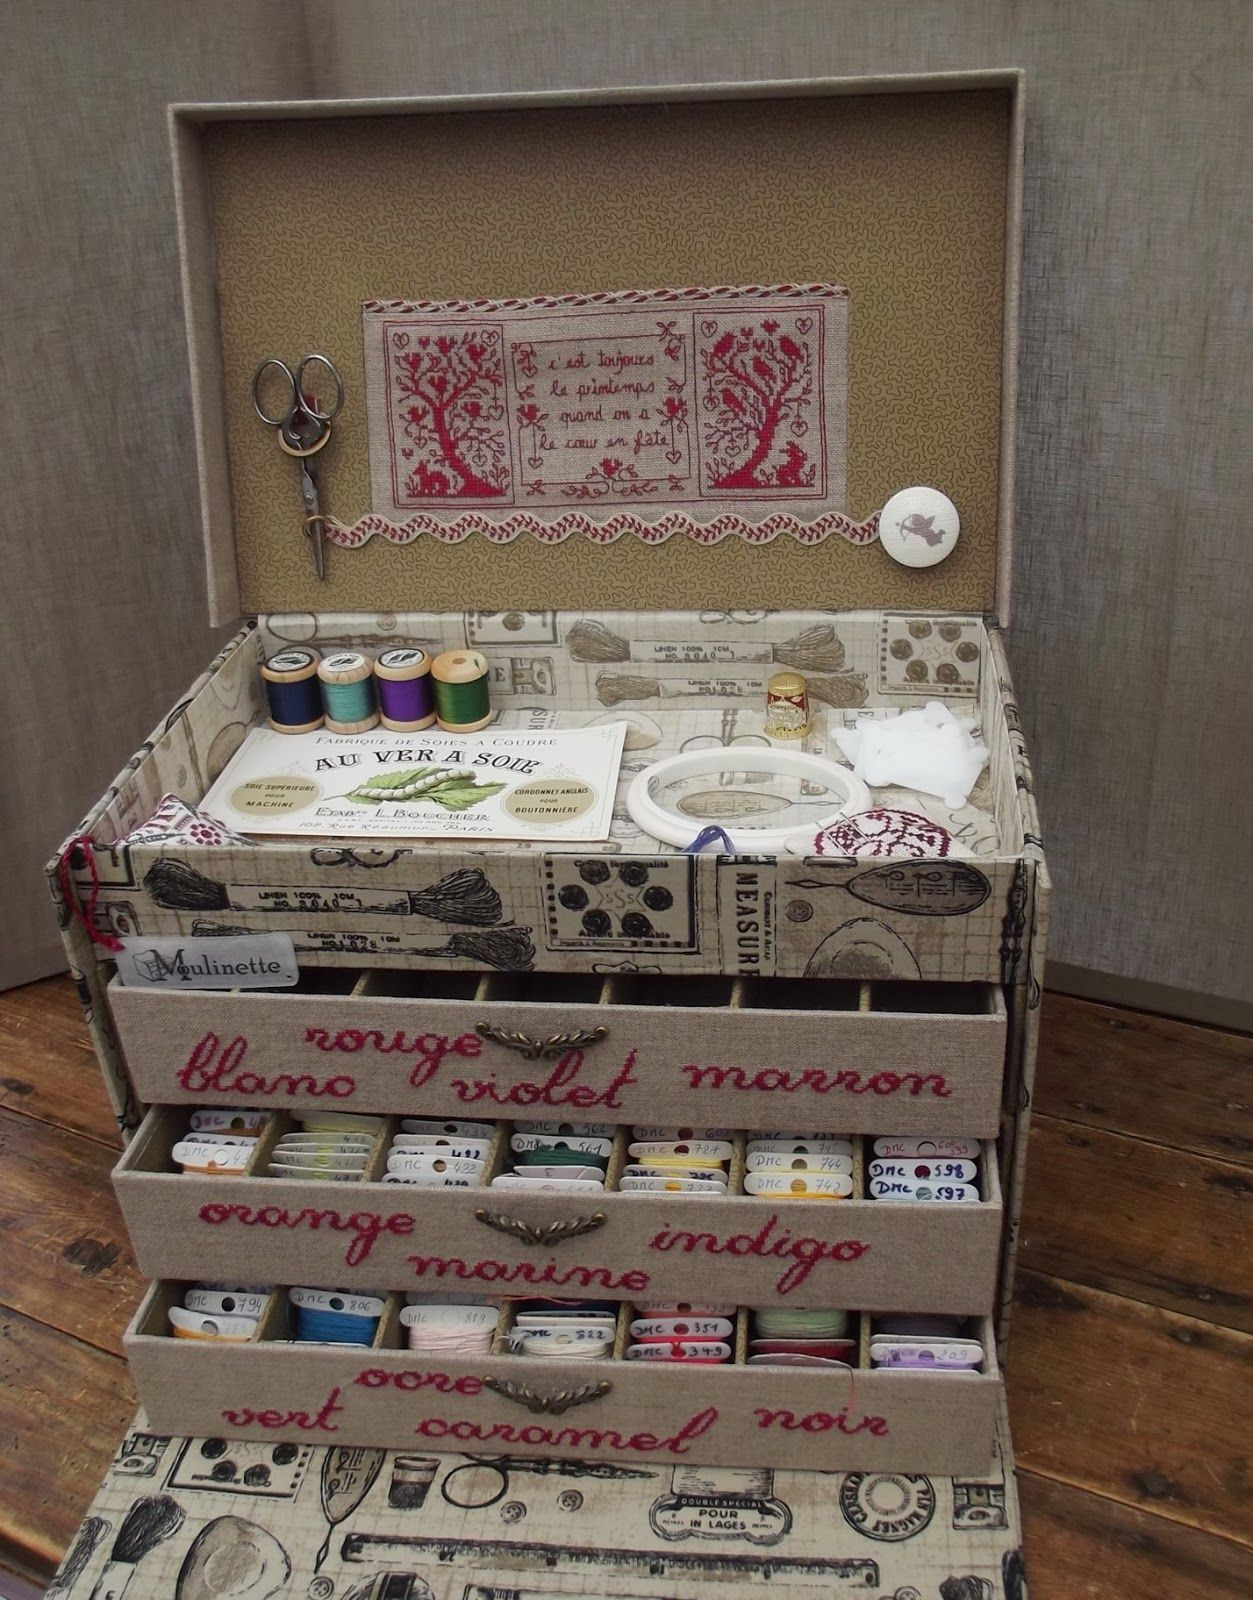 Craft hat boxes - Sewing Box Hat Boxes The Box Craft Projects Hobbies Stitching Romane Embroidery Thread Blogspot Fr